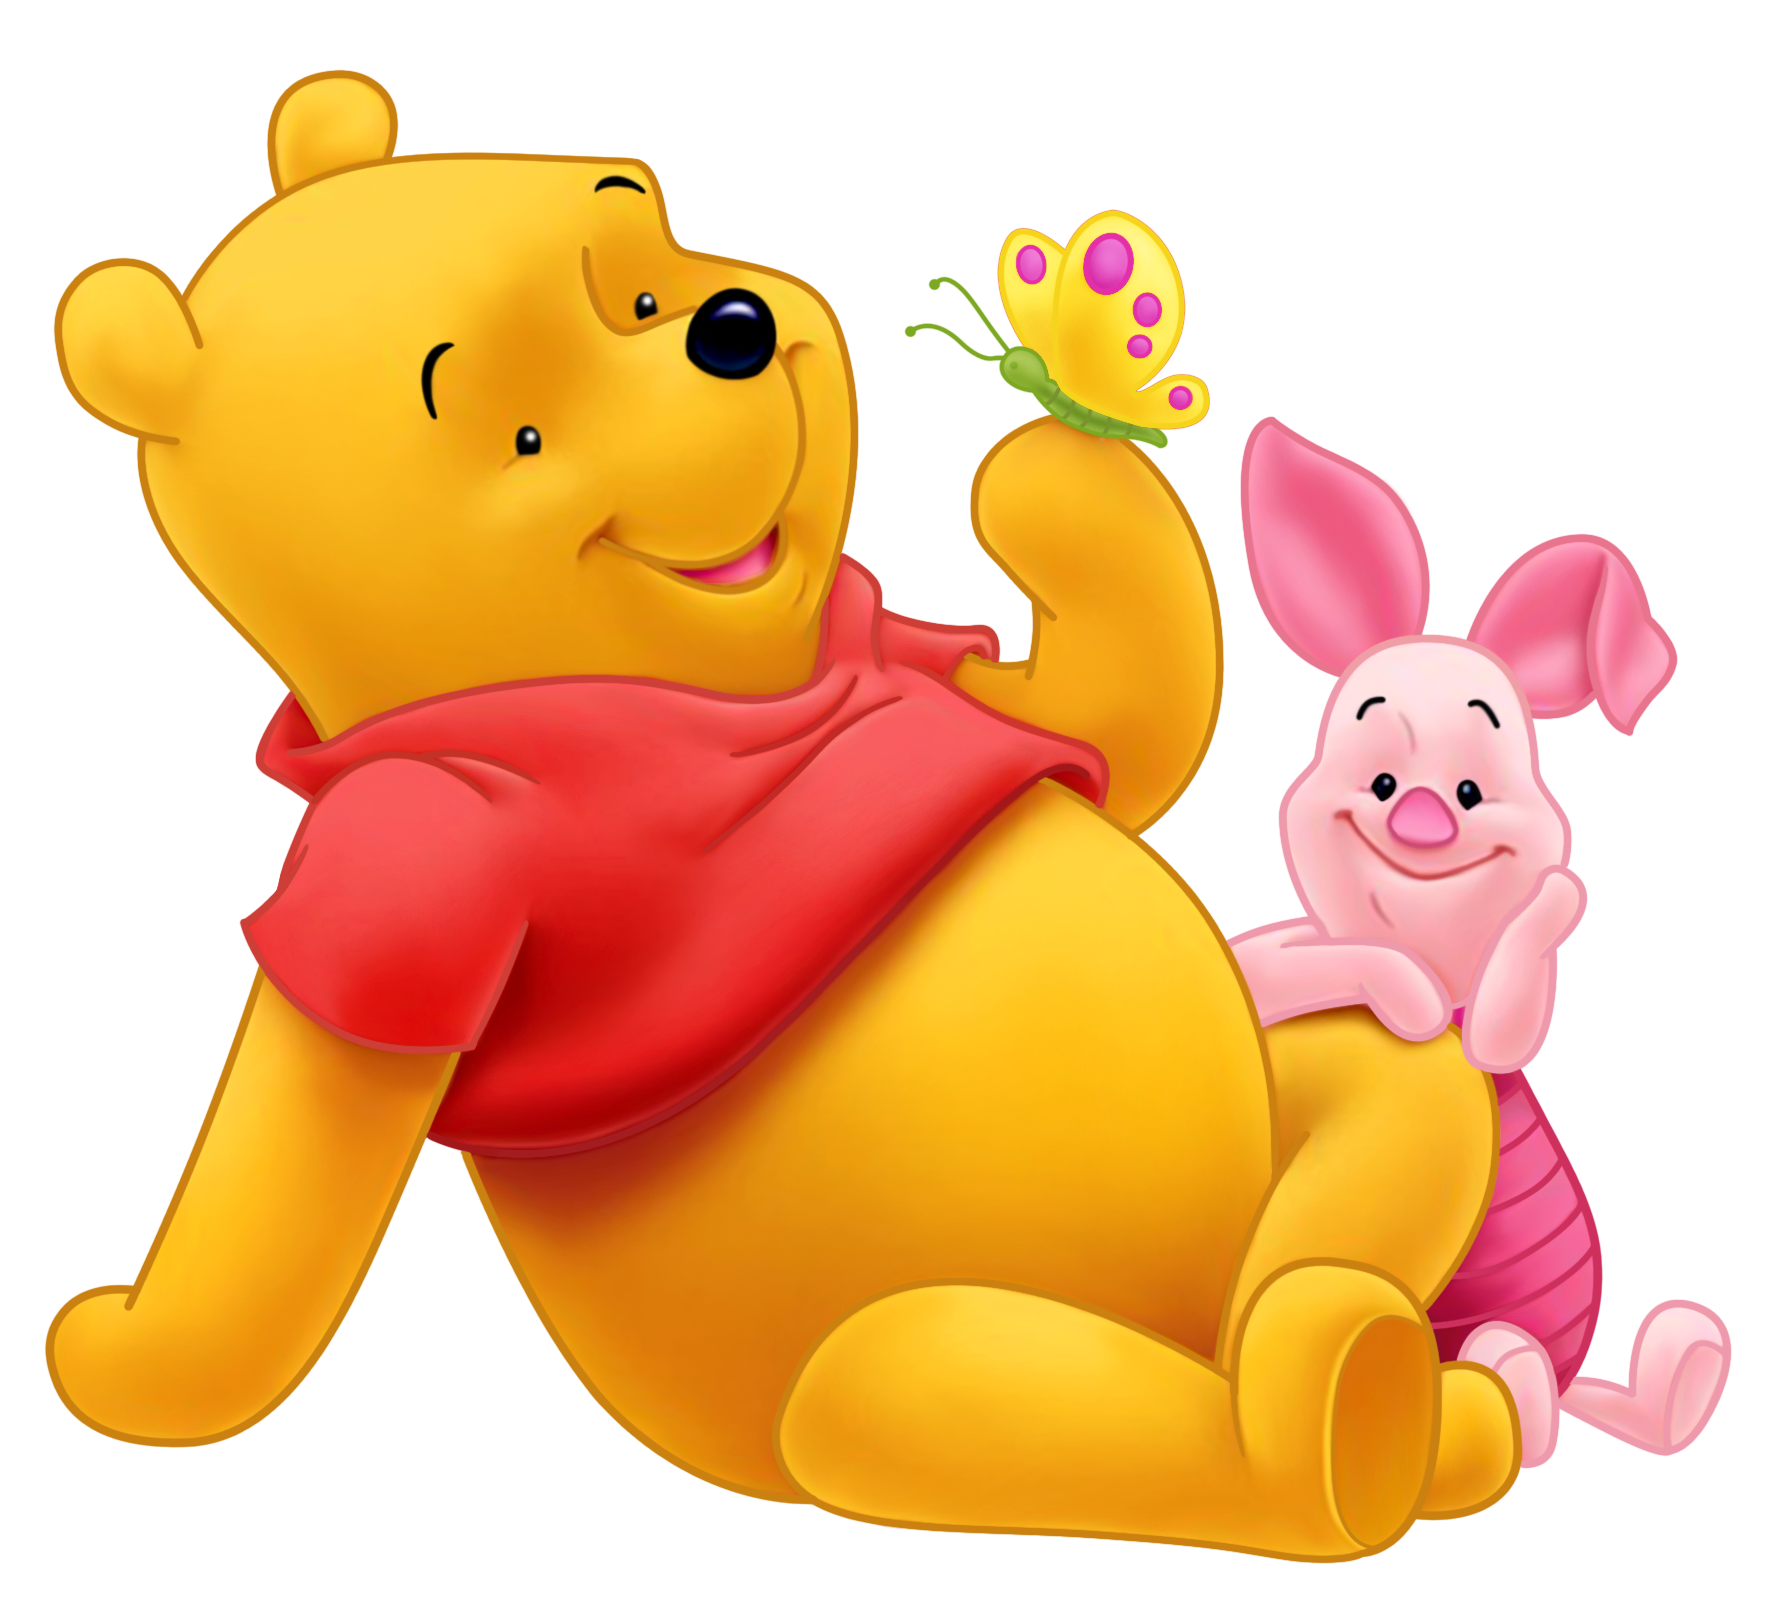 Cute winnie the pooh black and white thanksgiving clipart clip art transparent library Winnie the Pooh and Piglet PNG Picture | Gallery Yopriceville ... clip art transparent library